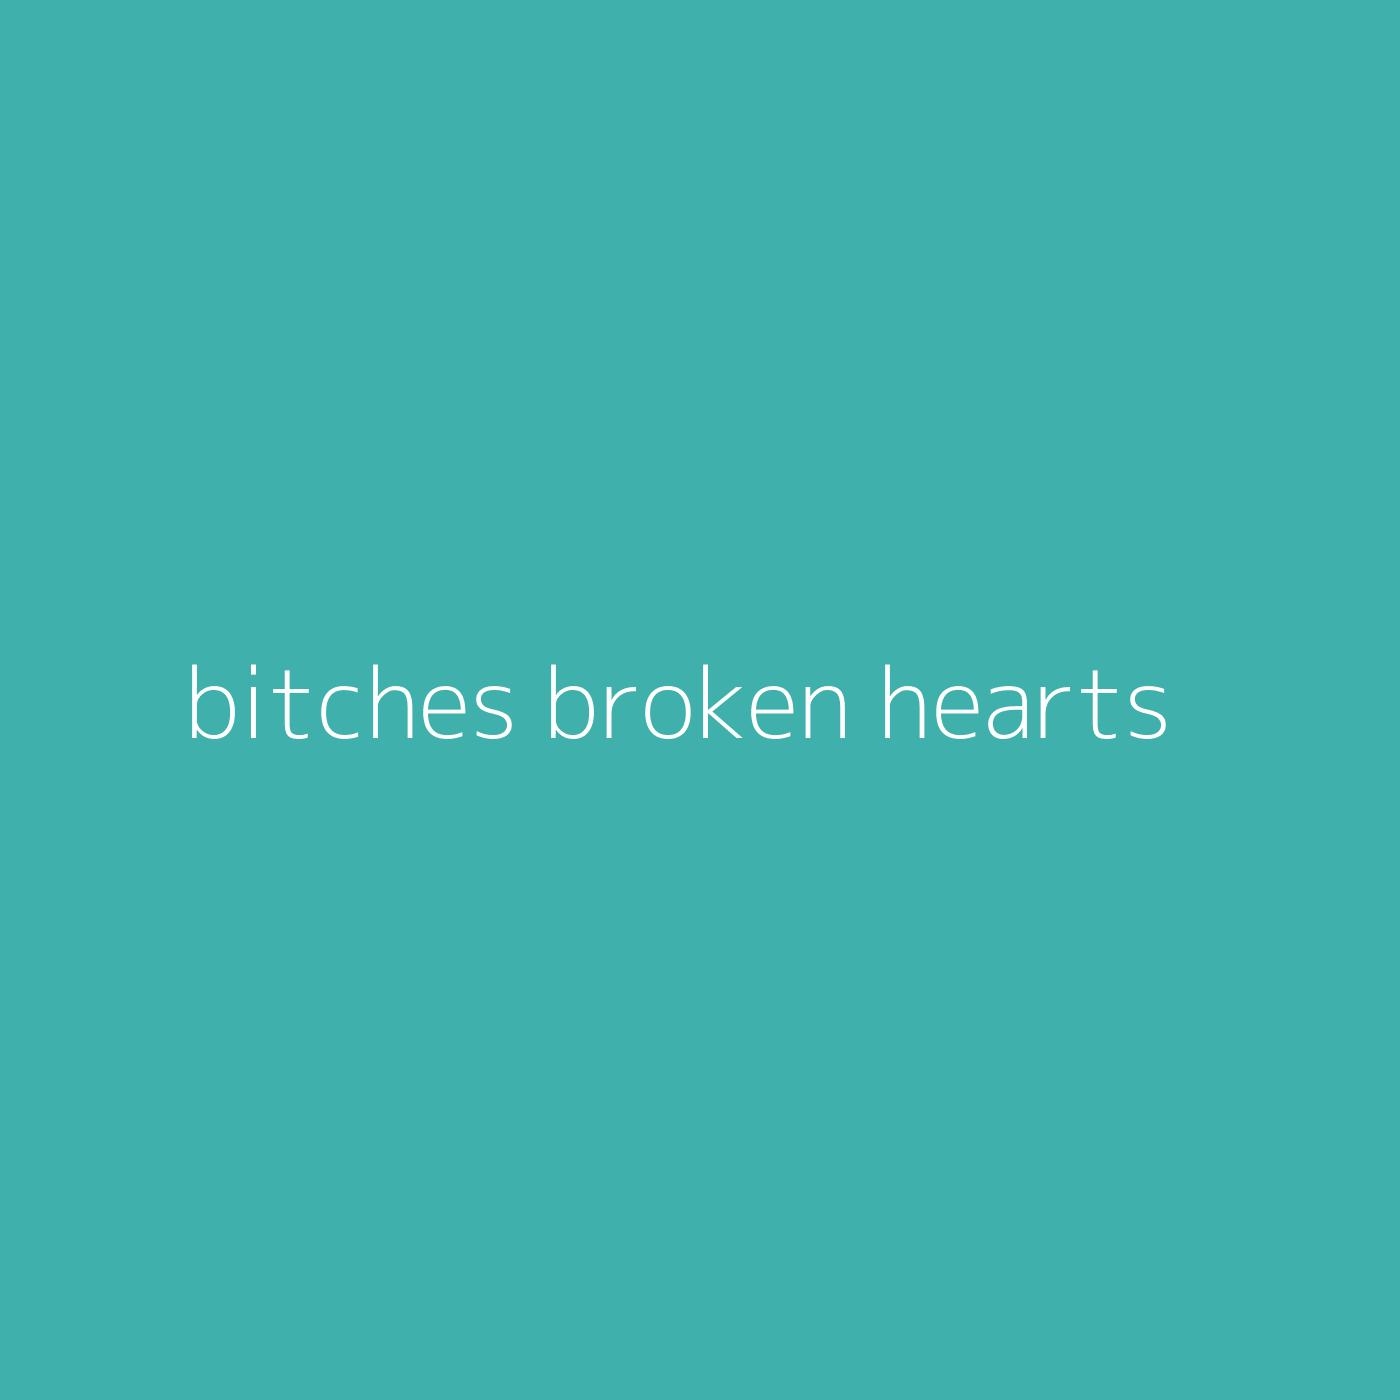 bitches broken hearts – Billie Eilish